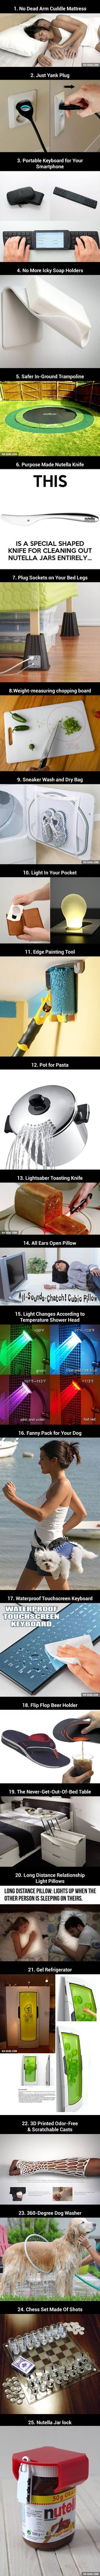 25 Just Really Cool Inventions(Diy Tech) (Cool Tech Gadgets) Cool Ideas, Ideas Para Inventos, Things To Buy, Good Things, Cool Stuff, Take My Money, Cool Inventions, Cool Tech, Diy Tech